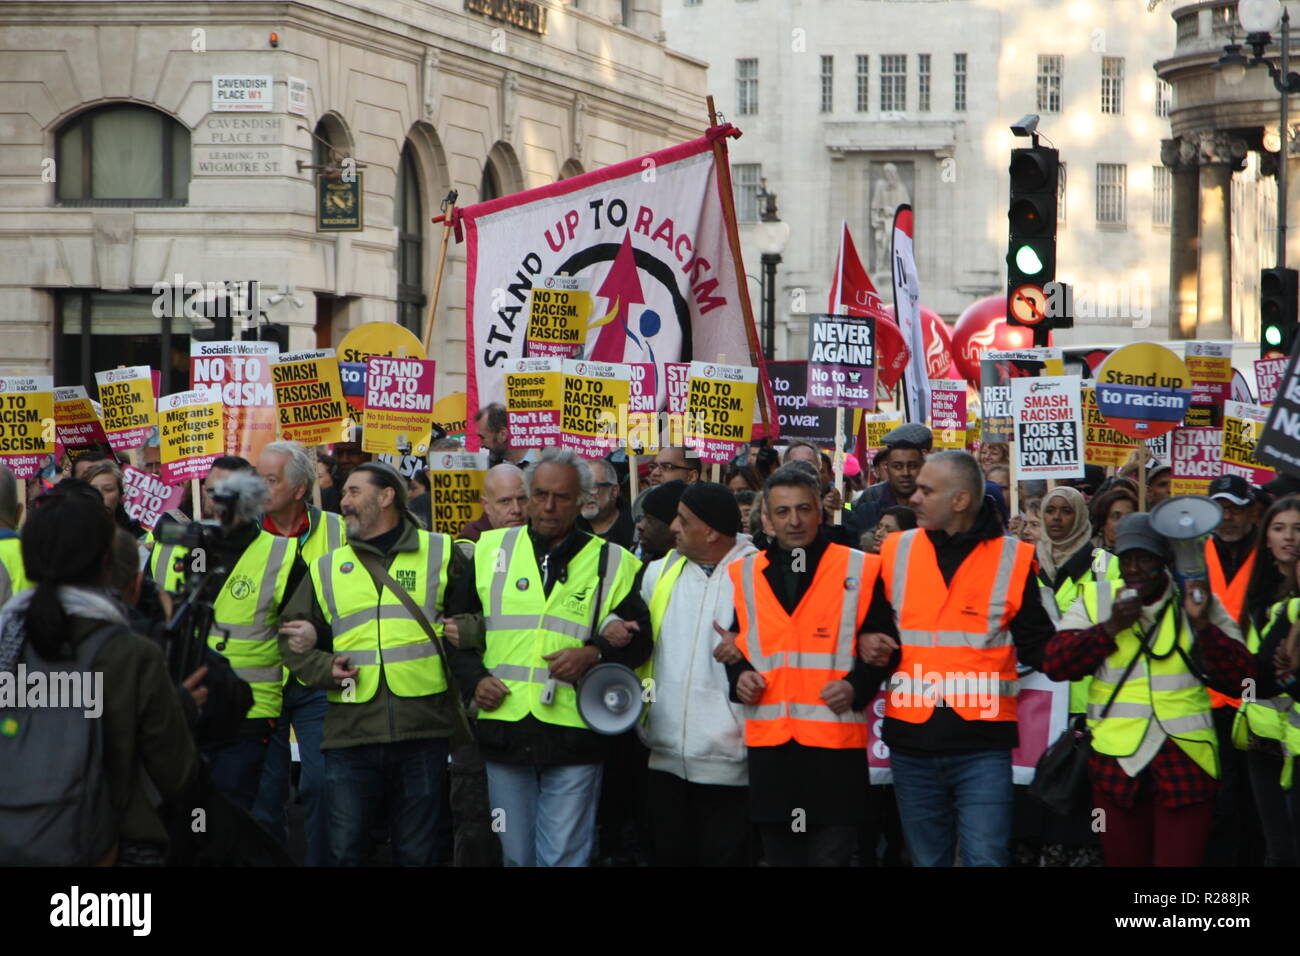 London, UK, 17th November 2018.Thousands of people take to the streets of London to protest against the growth of racism, hate crime and far-right extremism nationally and globally. The march sets out from Portland Place, where the BBC is based, before heading through London to Whitehall. The event is organised by Unite against Fascism, Stand Up to Racism and Love Music Hate Racism and backed by the TUC, which represents the UK's leading Trades Unions. Roland Ravenhill/Alamy Live News - Stock Image